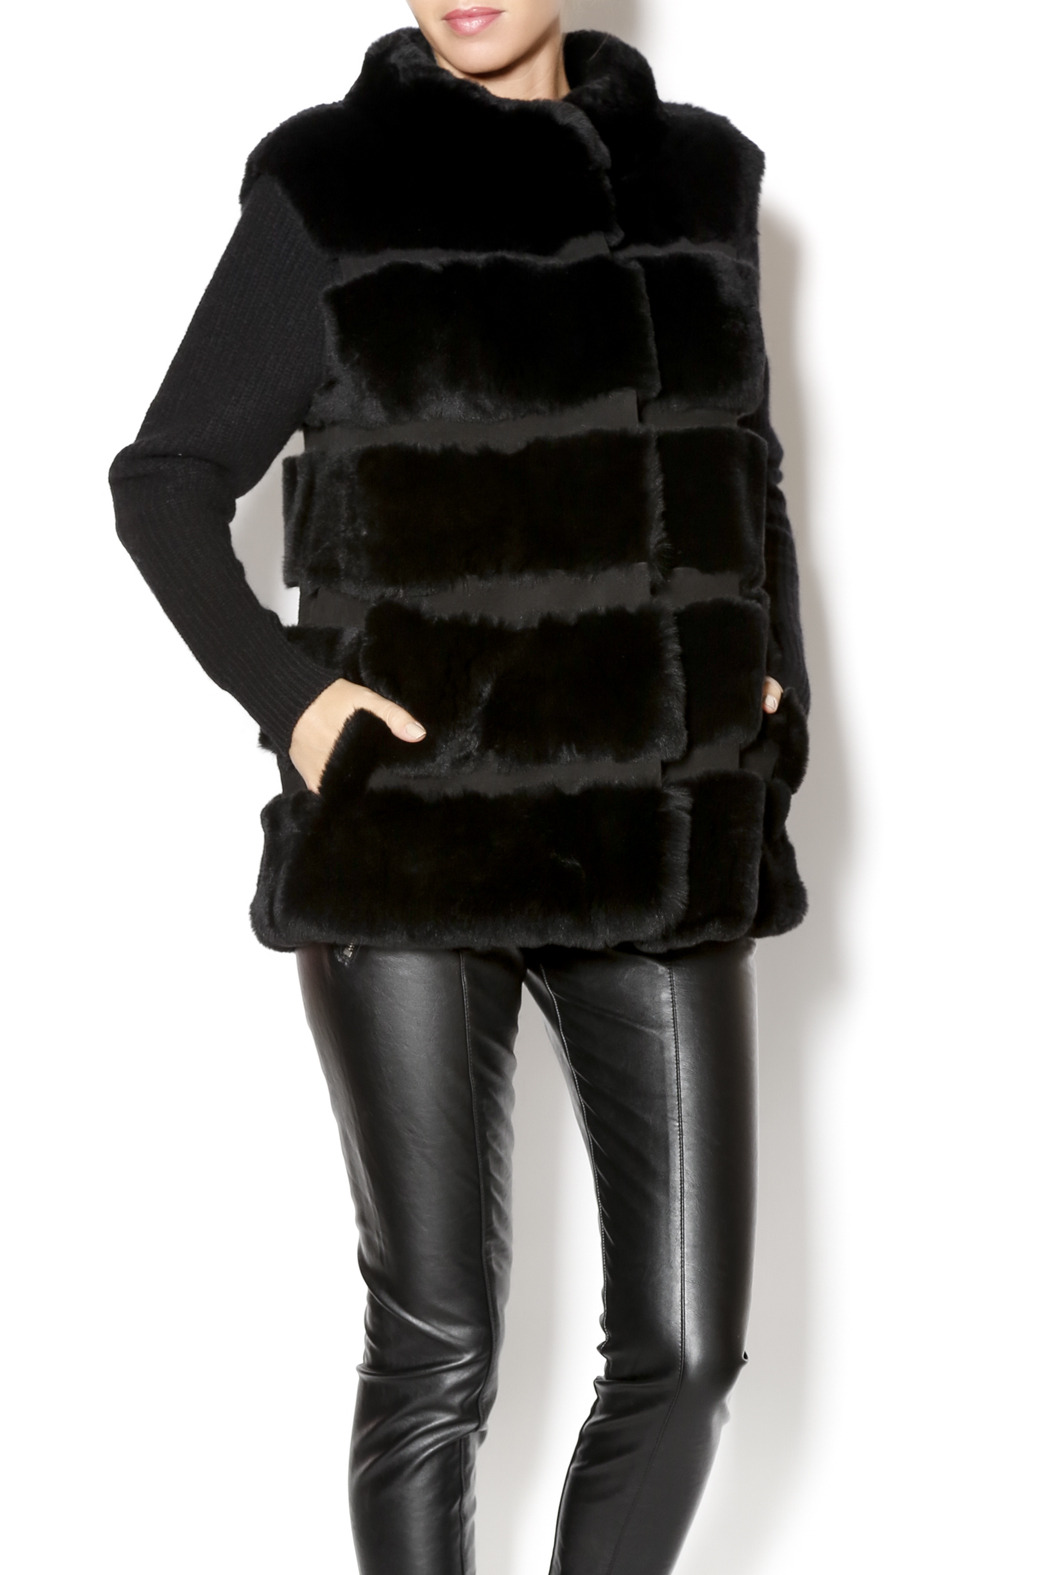 81a7cc25883f Diane von Furstenberg DVF Rabbit Fur Vest from New Jersey by Hartly ...